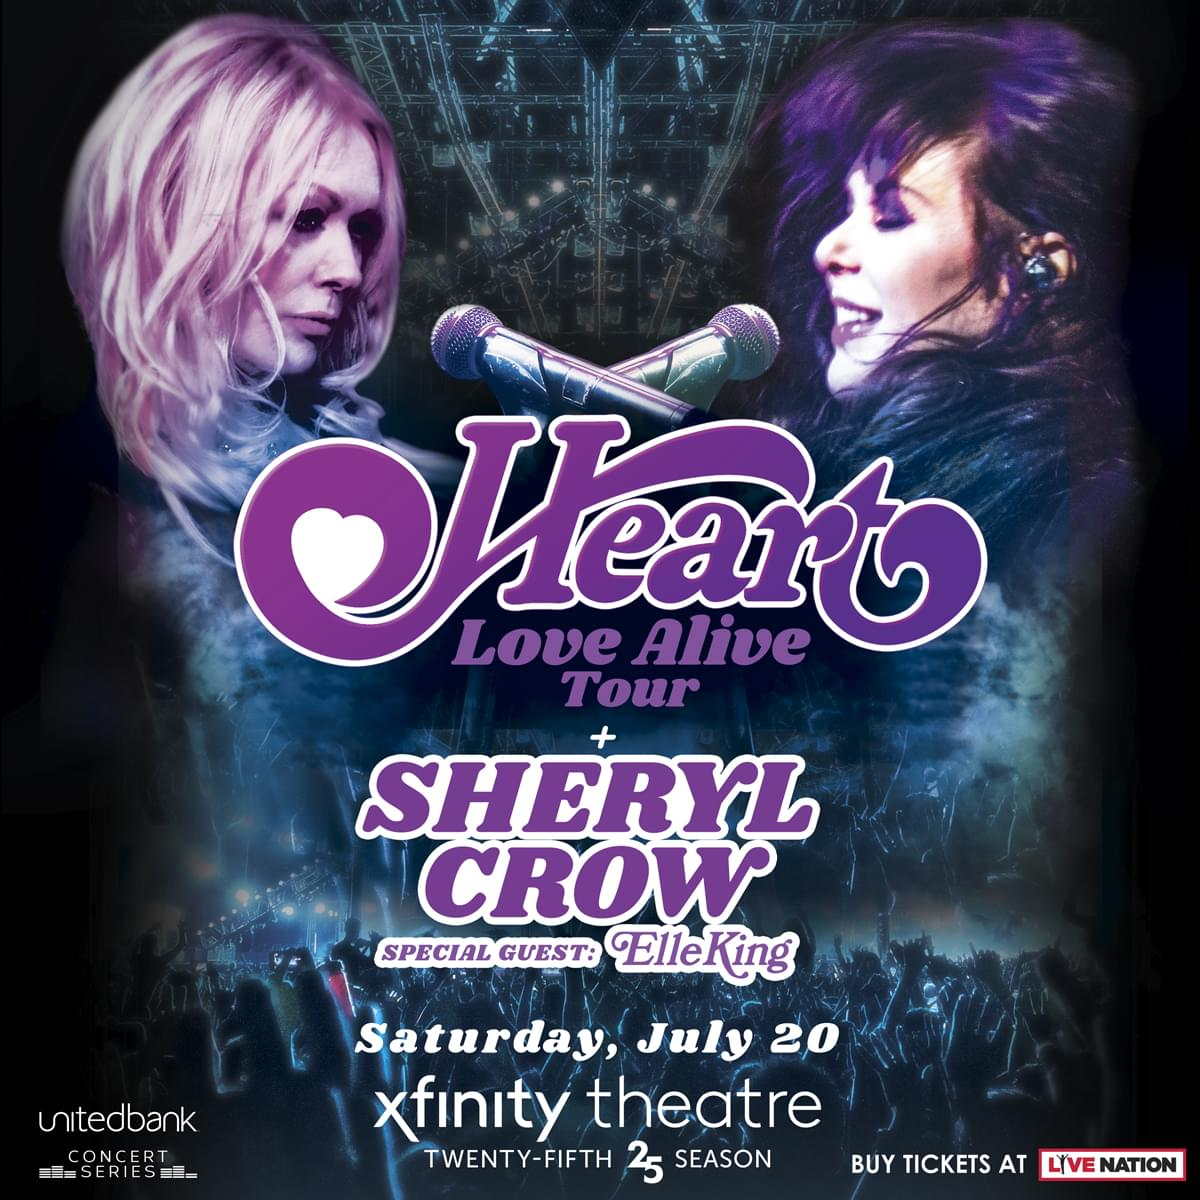 Enter to win tickets to Heart with Sheryl Crow and Elle King